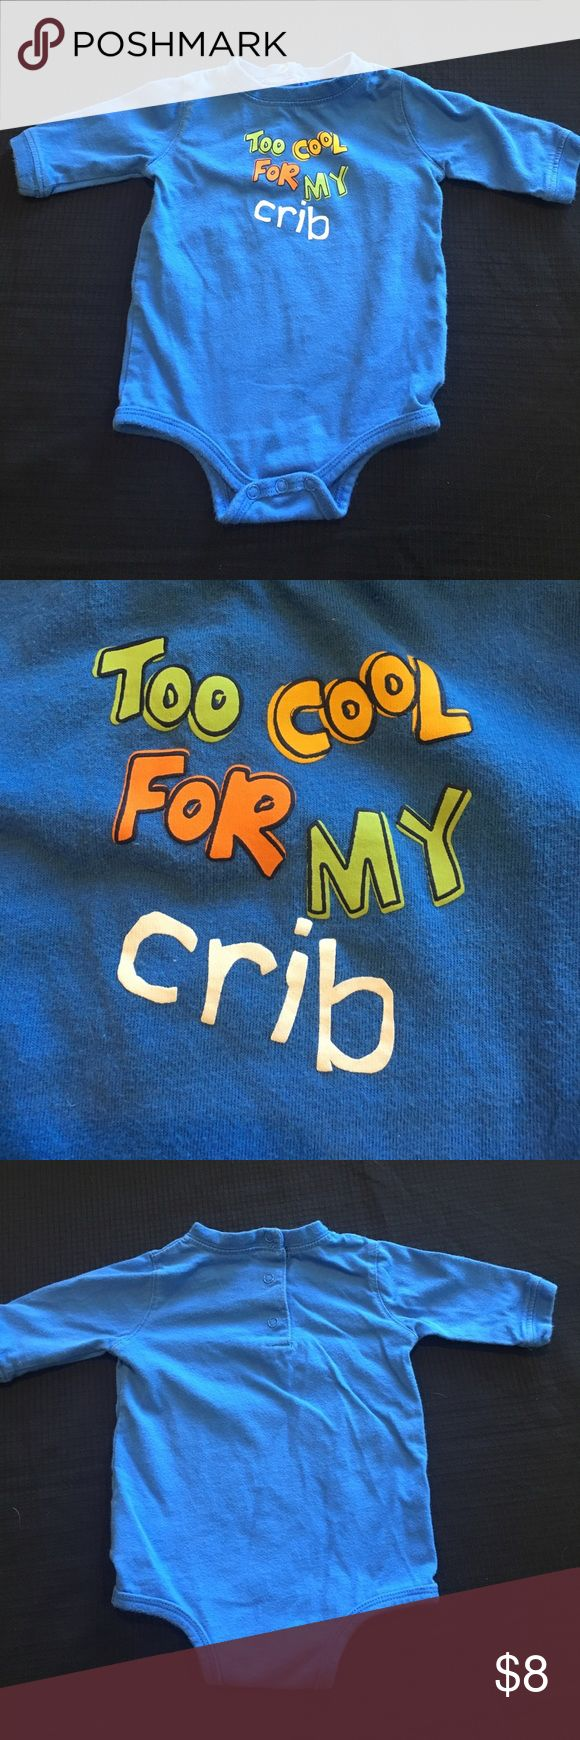 💰💰5for $20 Okie Dokie To Cool for My Crib Onesie Okie Dokie long sleeve blue onesie that says Too Cool For My Crib. Well worn with life left in it. Bundle 215.     💰💰💰💰💰 You can bundle any 5 or more kids listings with 💰💰5 for $20 and make an offer. This makes all listing $4 each. If you want more then 5 listings please make the appropriate offer. I am willing to mix and match non sale listings with sale listings as well. Please ask questions. Thank you. Okie Dokie One Pieces…